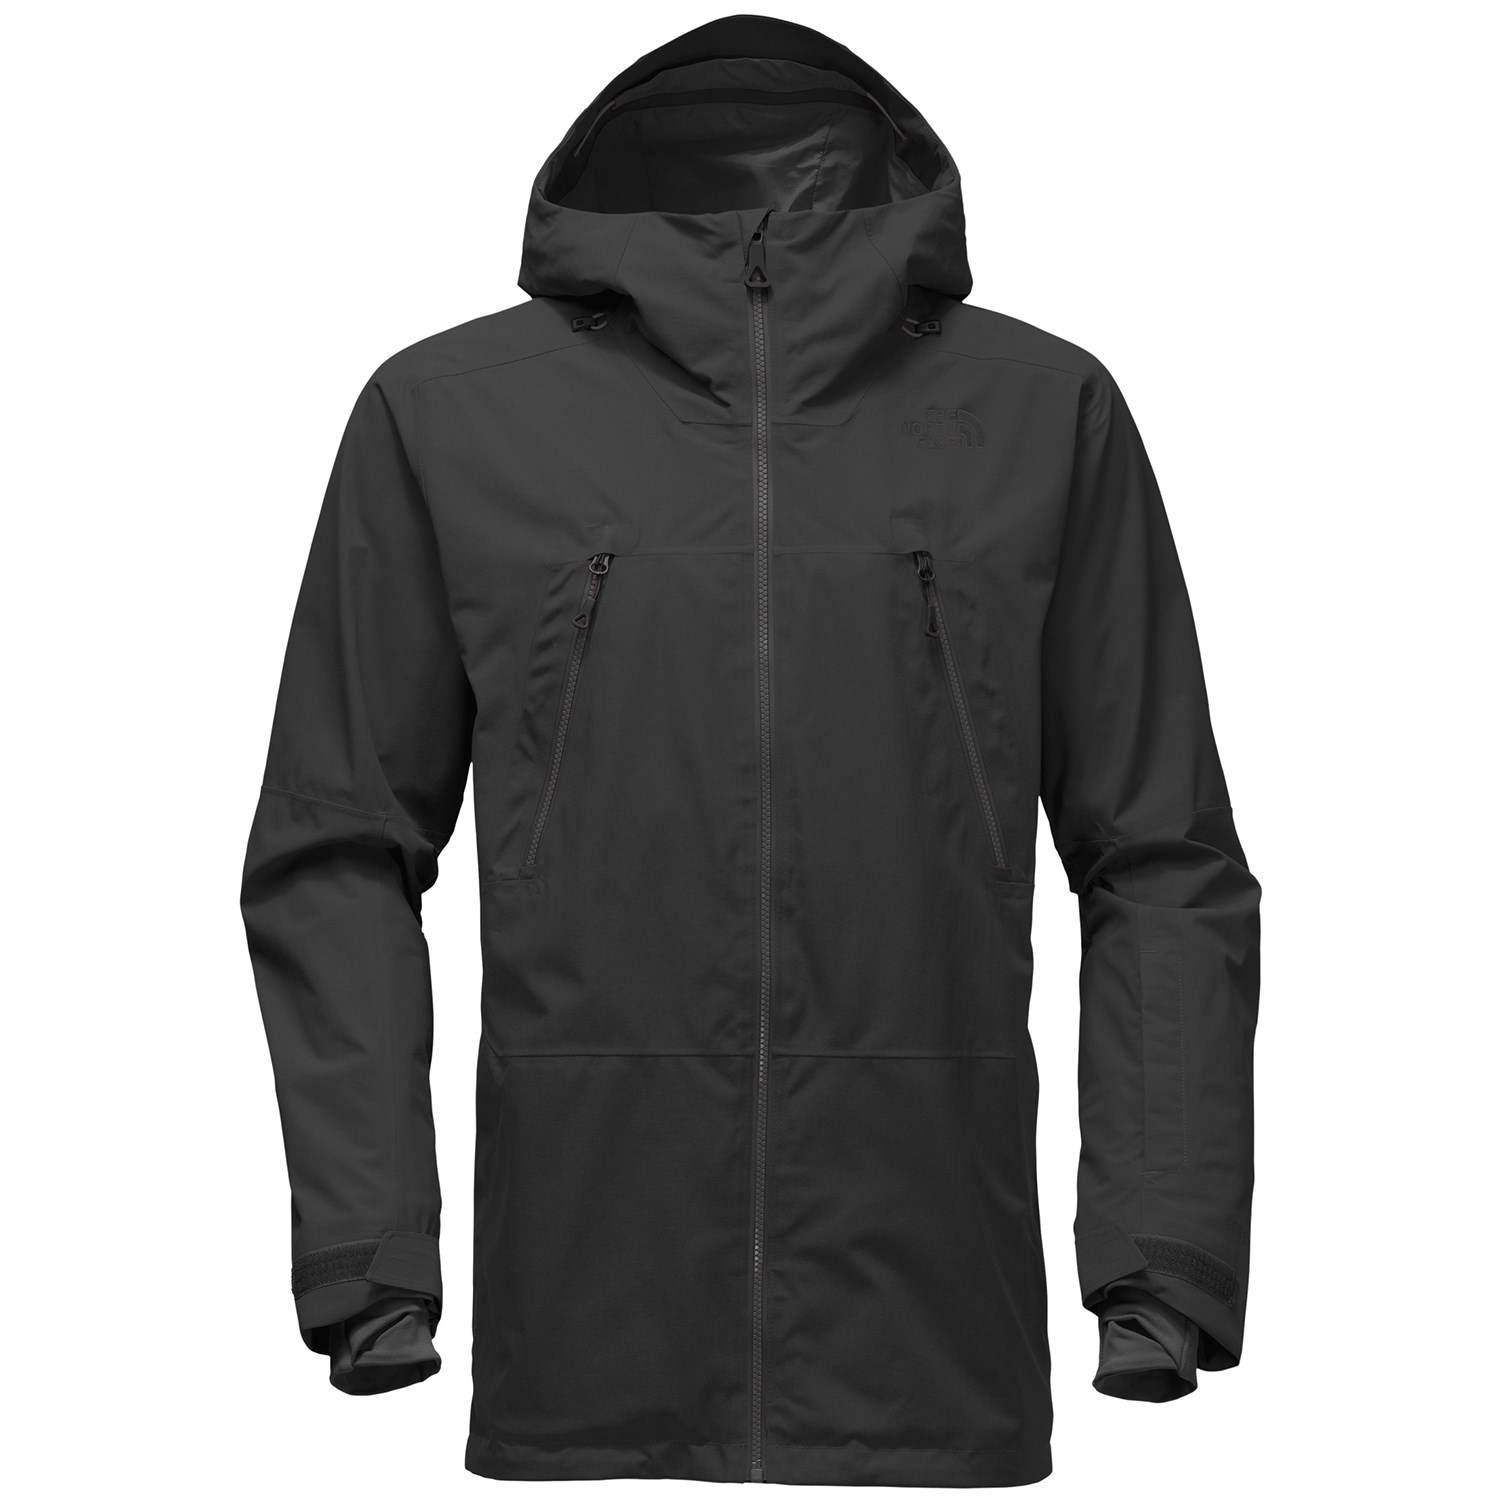 ea8b062fedc7 The North Face Lostrail Jacket